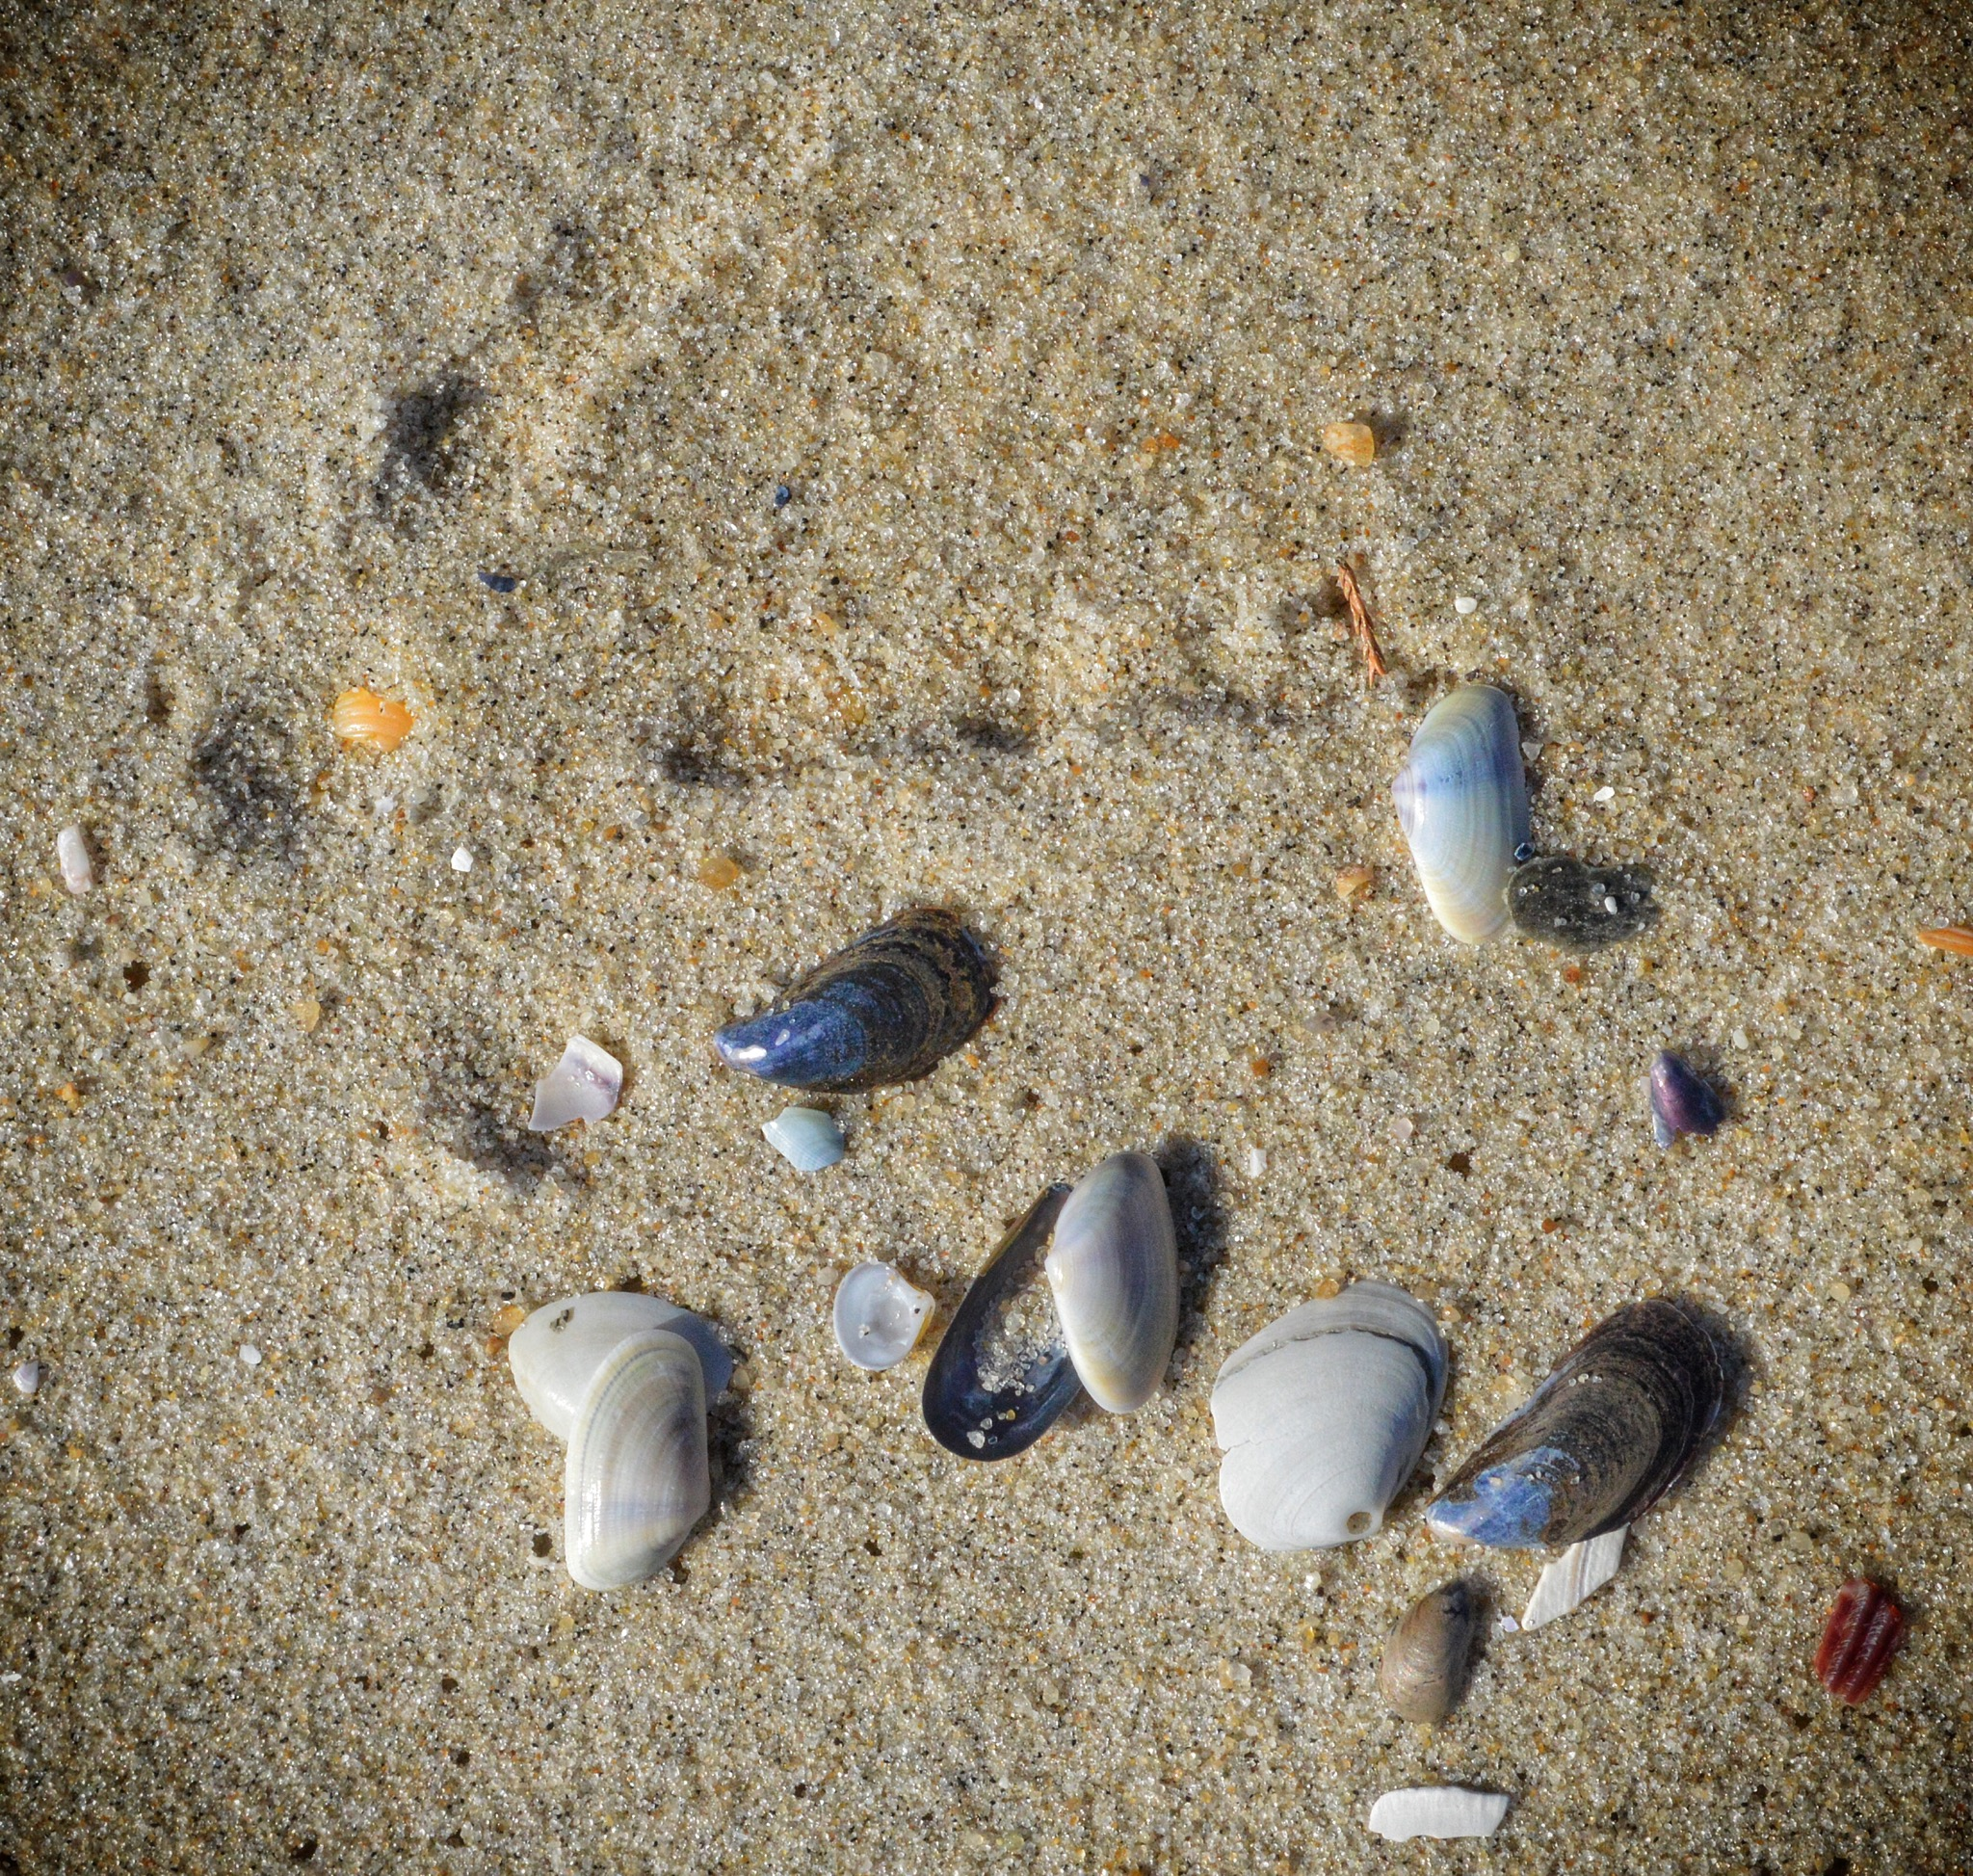 Leave Only YourFootprint